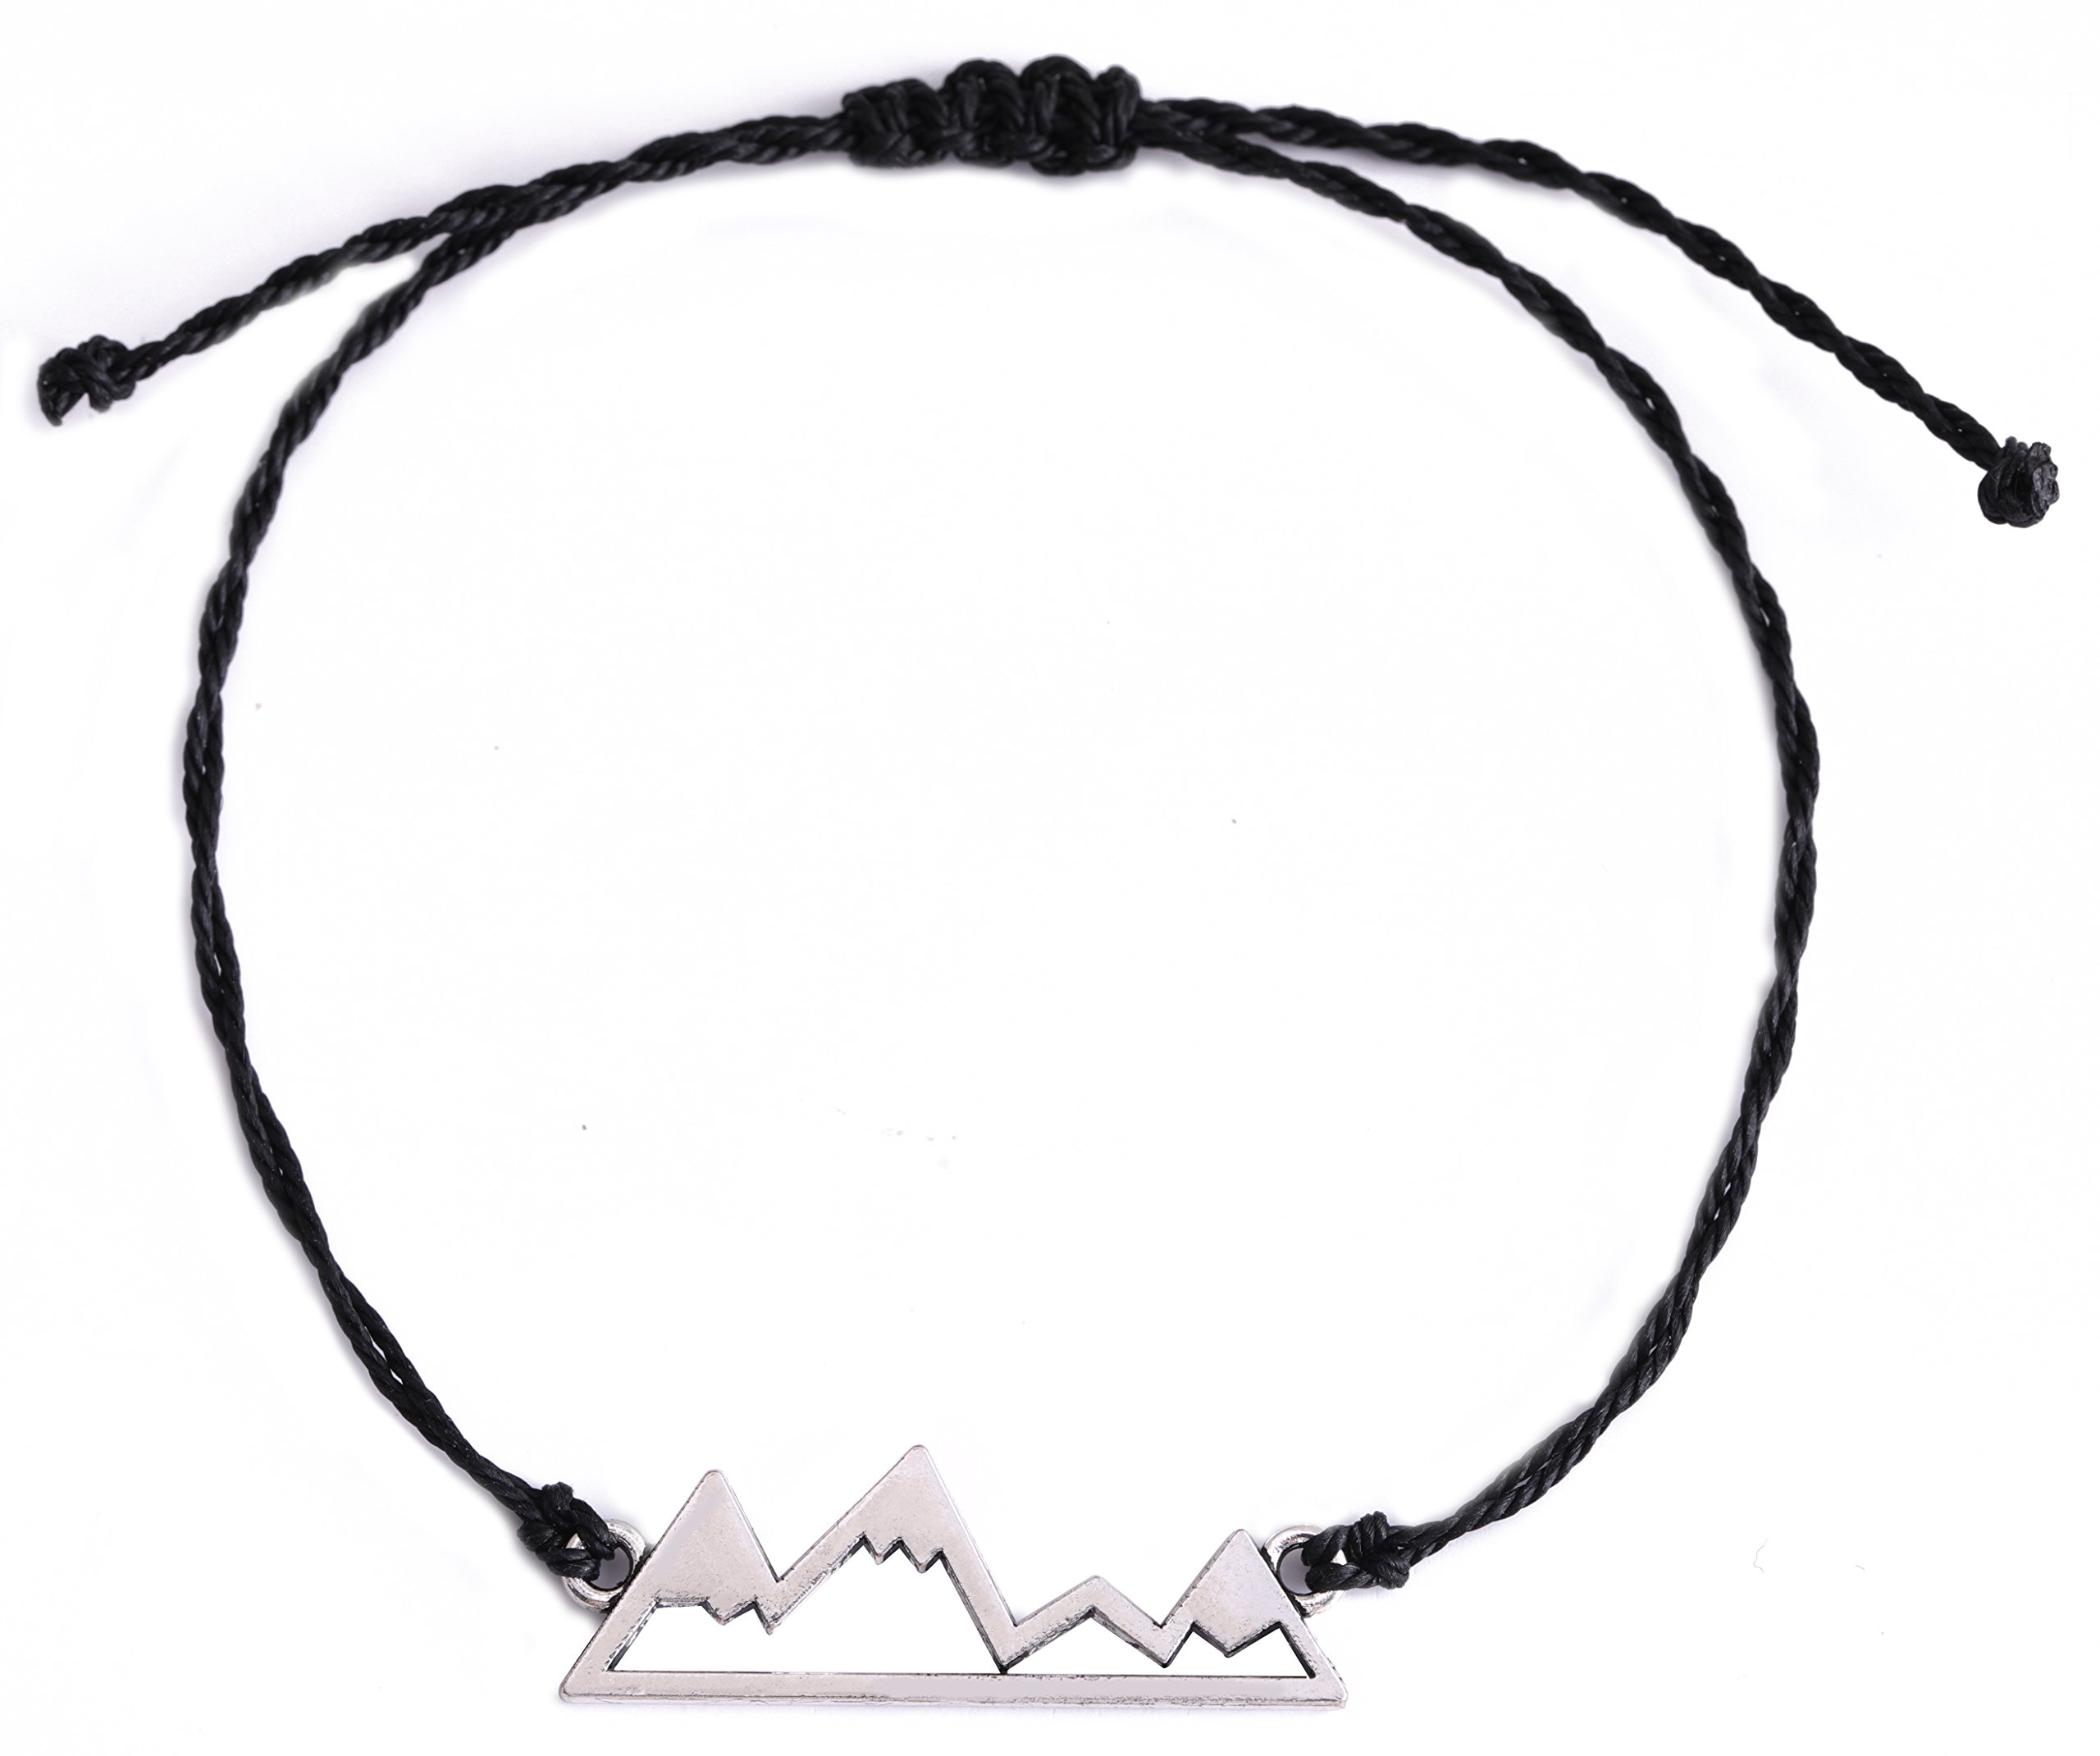 VASSAGO Handcraft Delicate Nature Snow Mountain Pendant Hiking Adventure Travel Charm Adjustable Wax Cord Bracelet (Black)